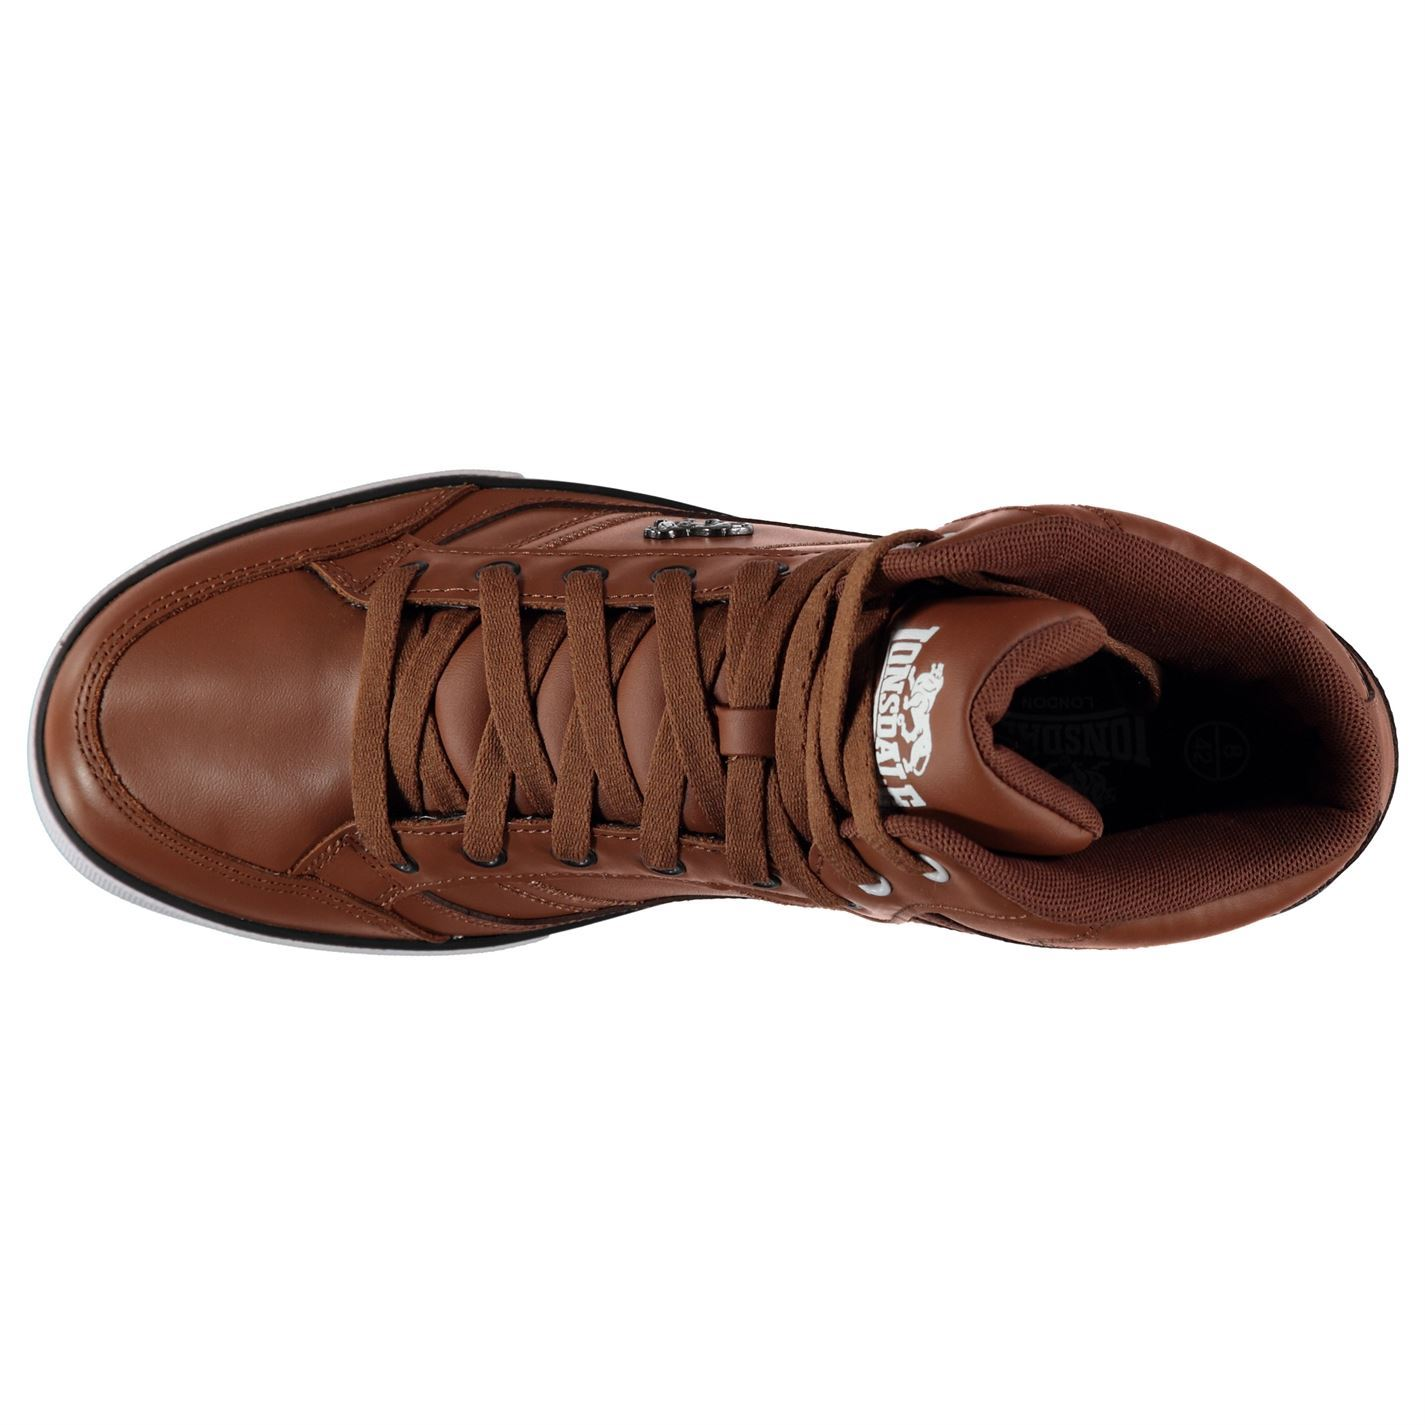 Lonsdale Canons Trainers Mens Tan//White Casual Sneakers Shoes Footwear